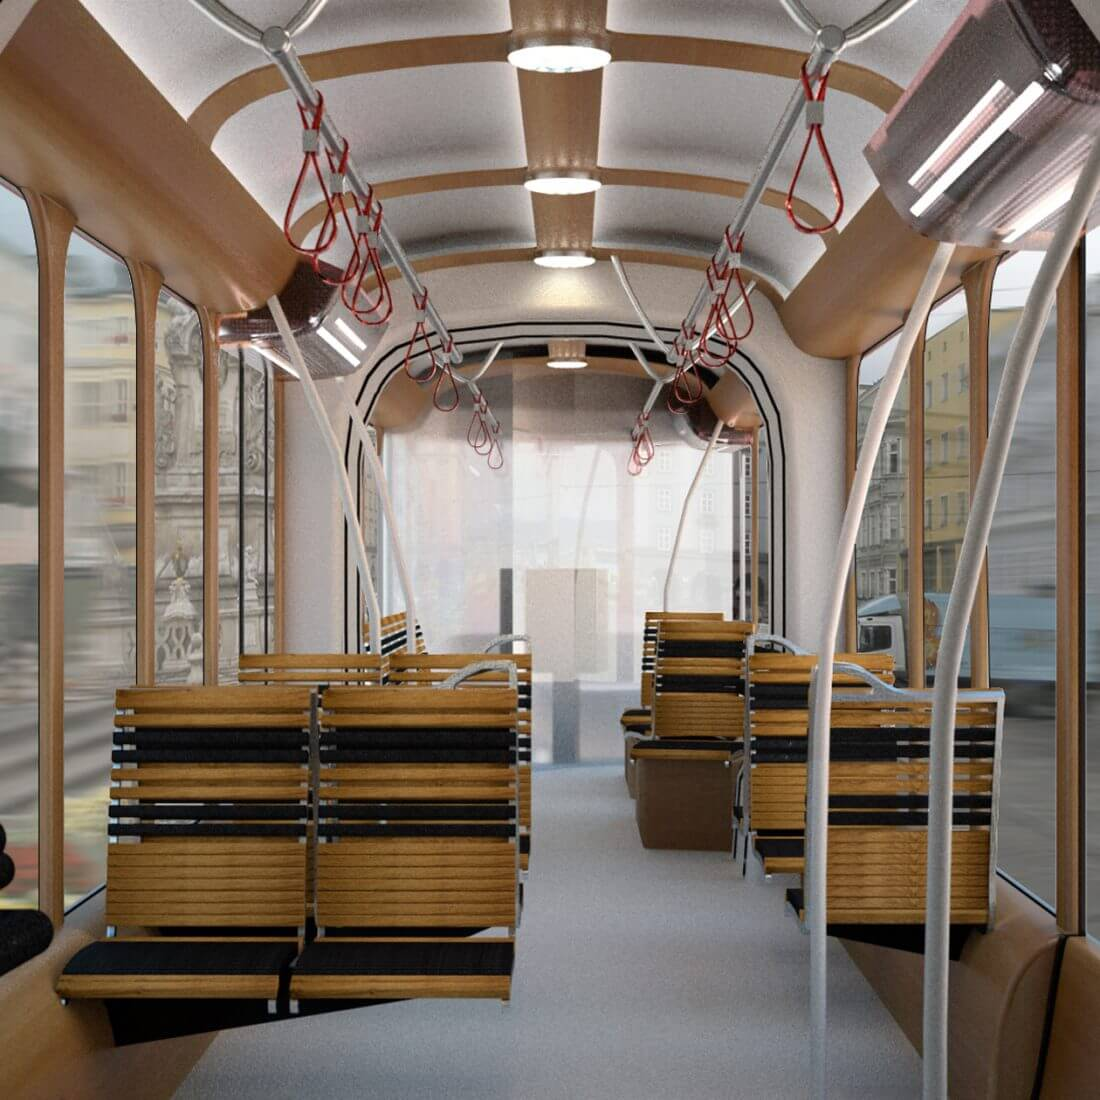 Industrial Design & Transportation Design - Döllmann Design + Architektur, Pöstlingbergbahn Linz, Industrial Design, Transportation Design, interior of a modern tram in retro design